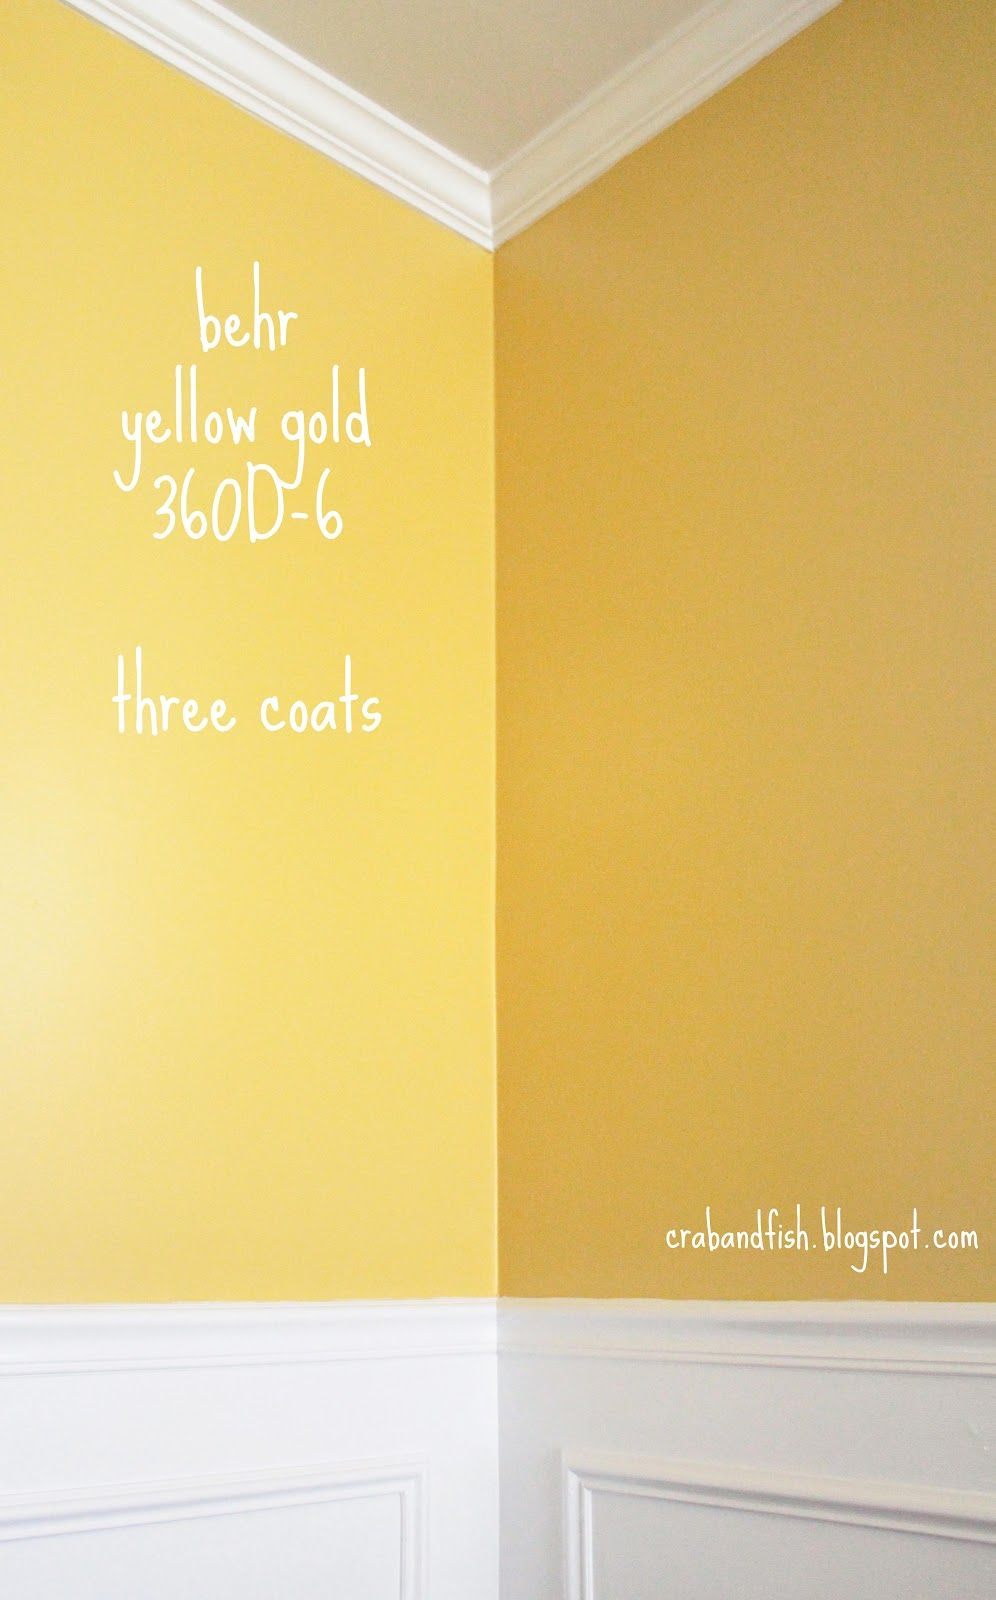 behr yellow gold 360d-6 three coats | For the Home | Pinterest ...